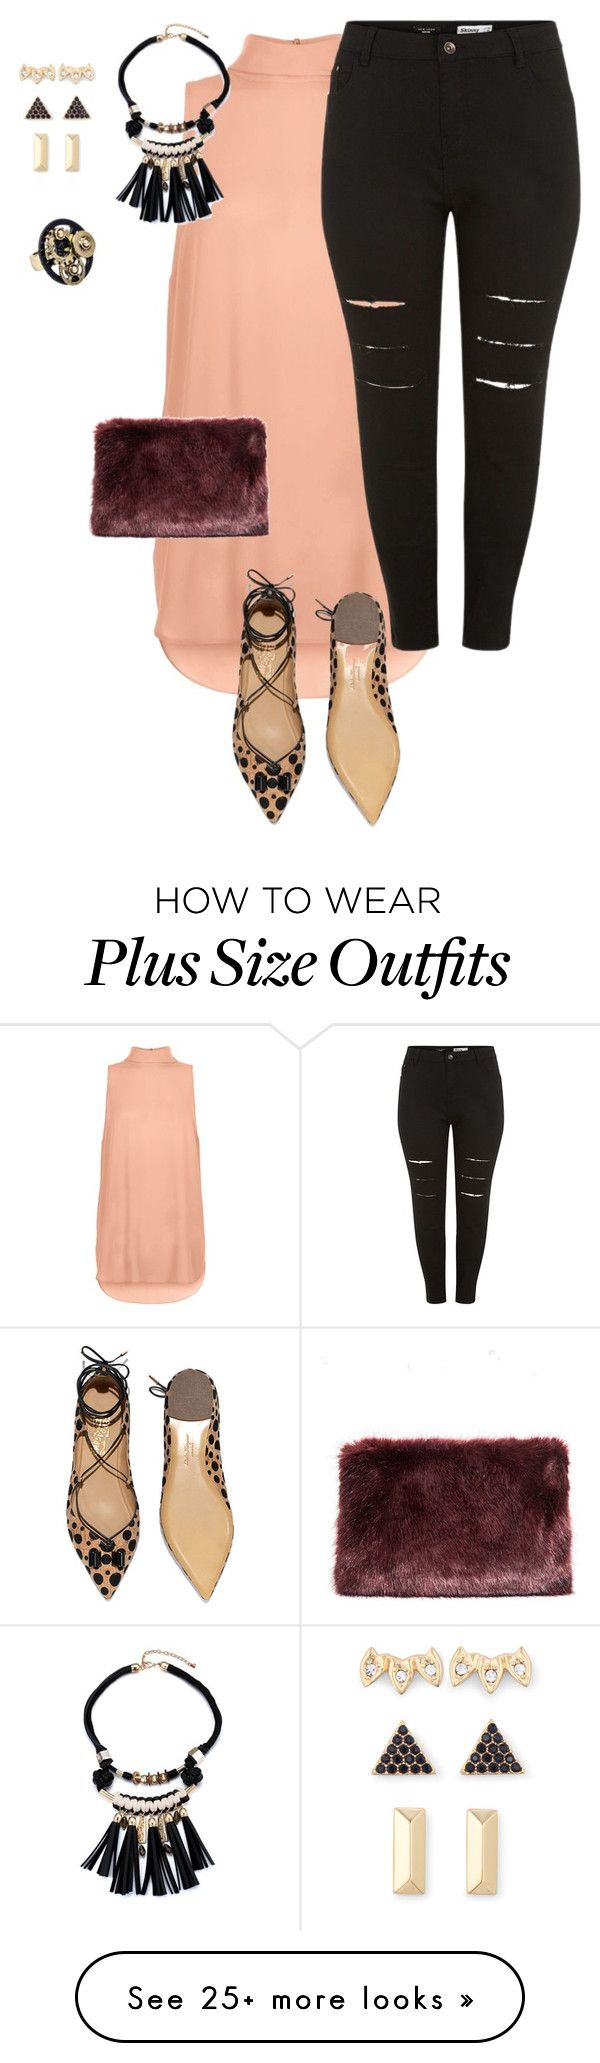 """""""plus size simple and pretty night out"""" by kristie-payne on Polyvore featuring Salvatore Ferragamo, Stella & Dot, women's clothing, women, female, woman, misses and juniors"""